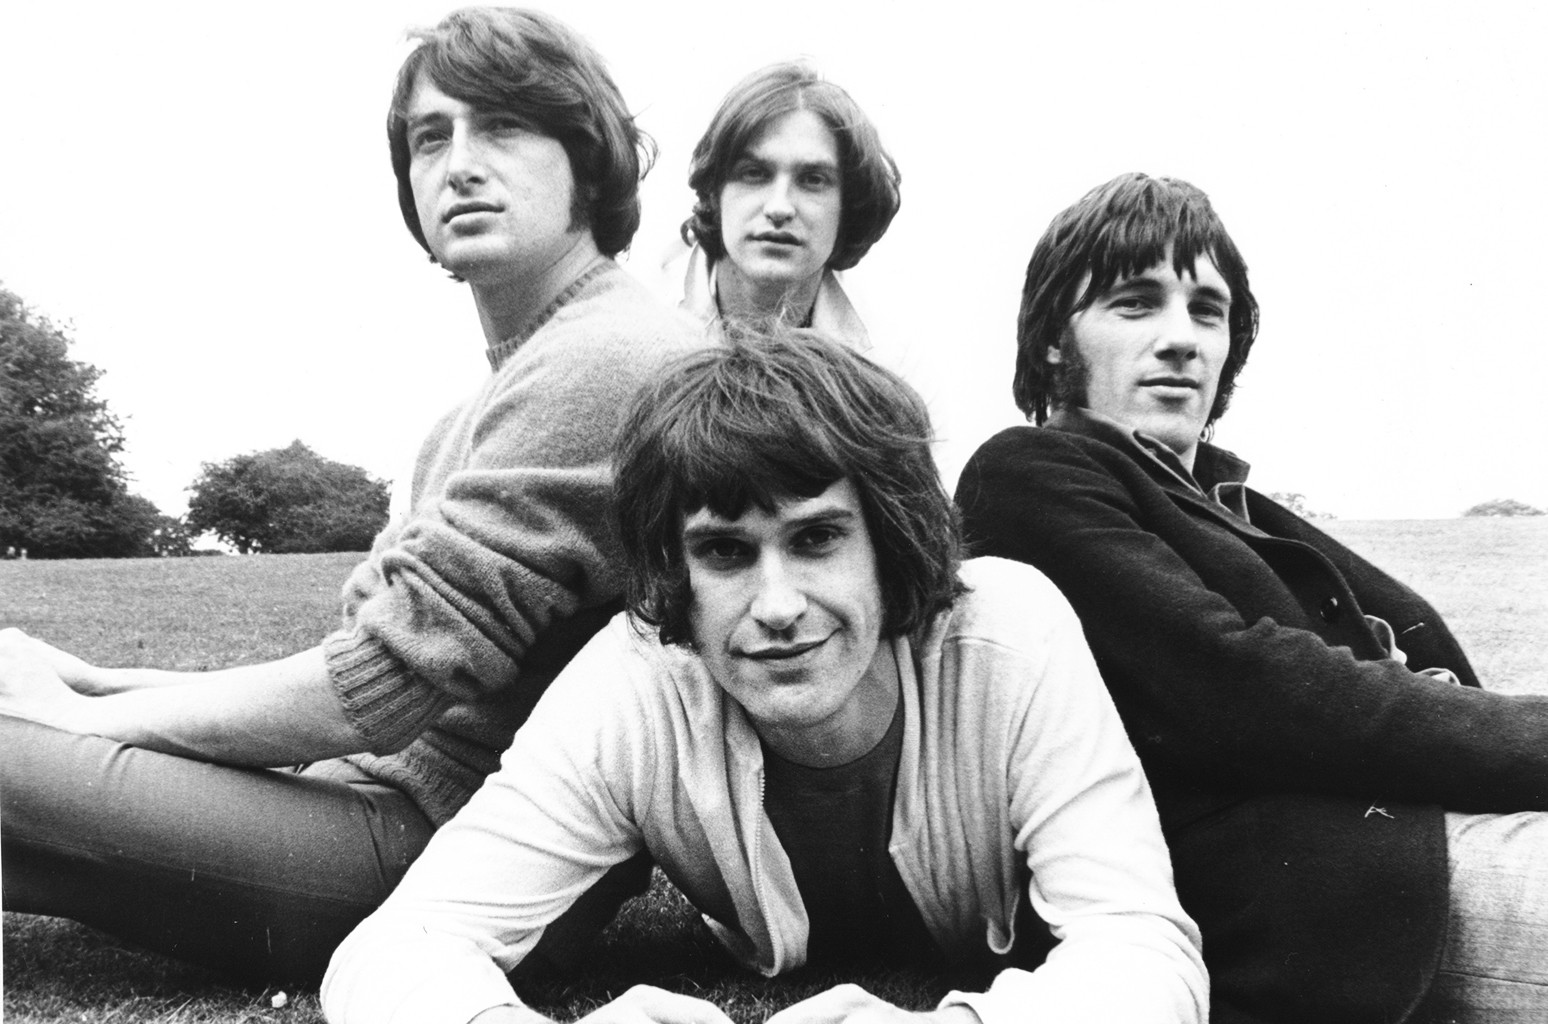 The Kinks photographed in 1968.